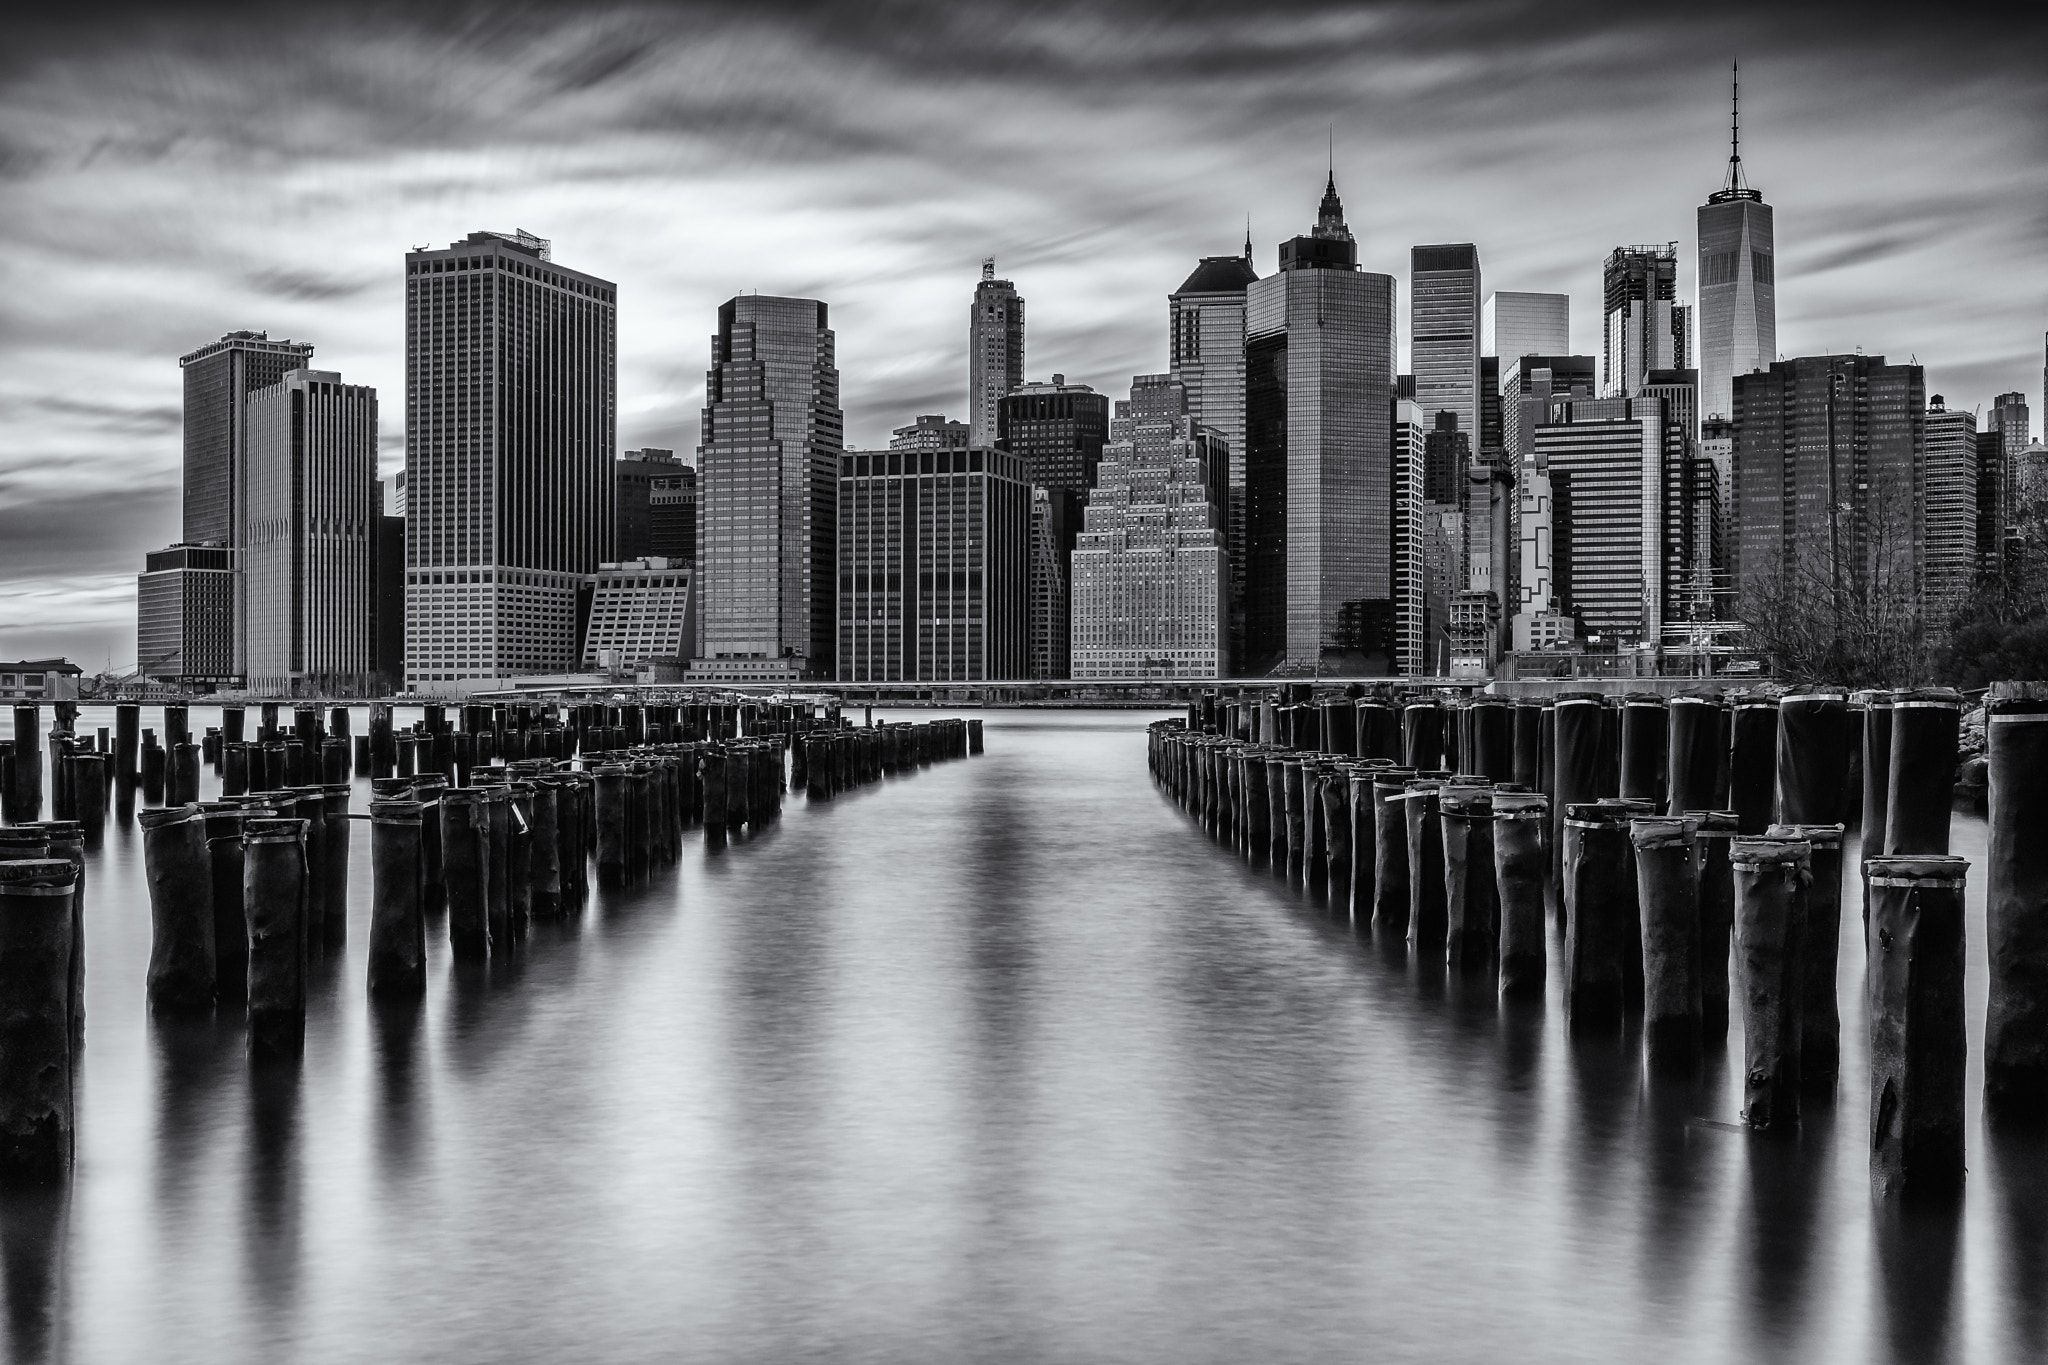 "New York Minute - ""New York Minute"" - 60 seconds long exposure of the Lower Manhattan skyline from Brooklyn Bridge Park capaturing one minute in time.in NYC."